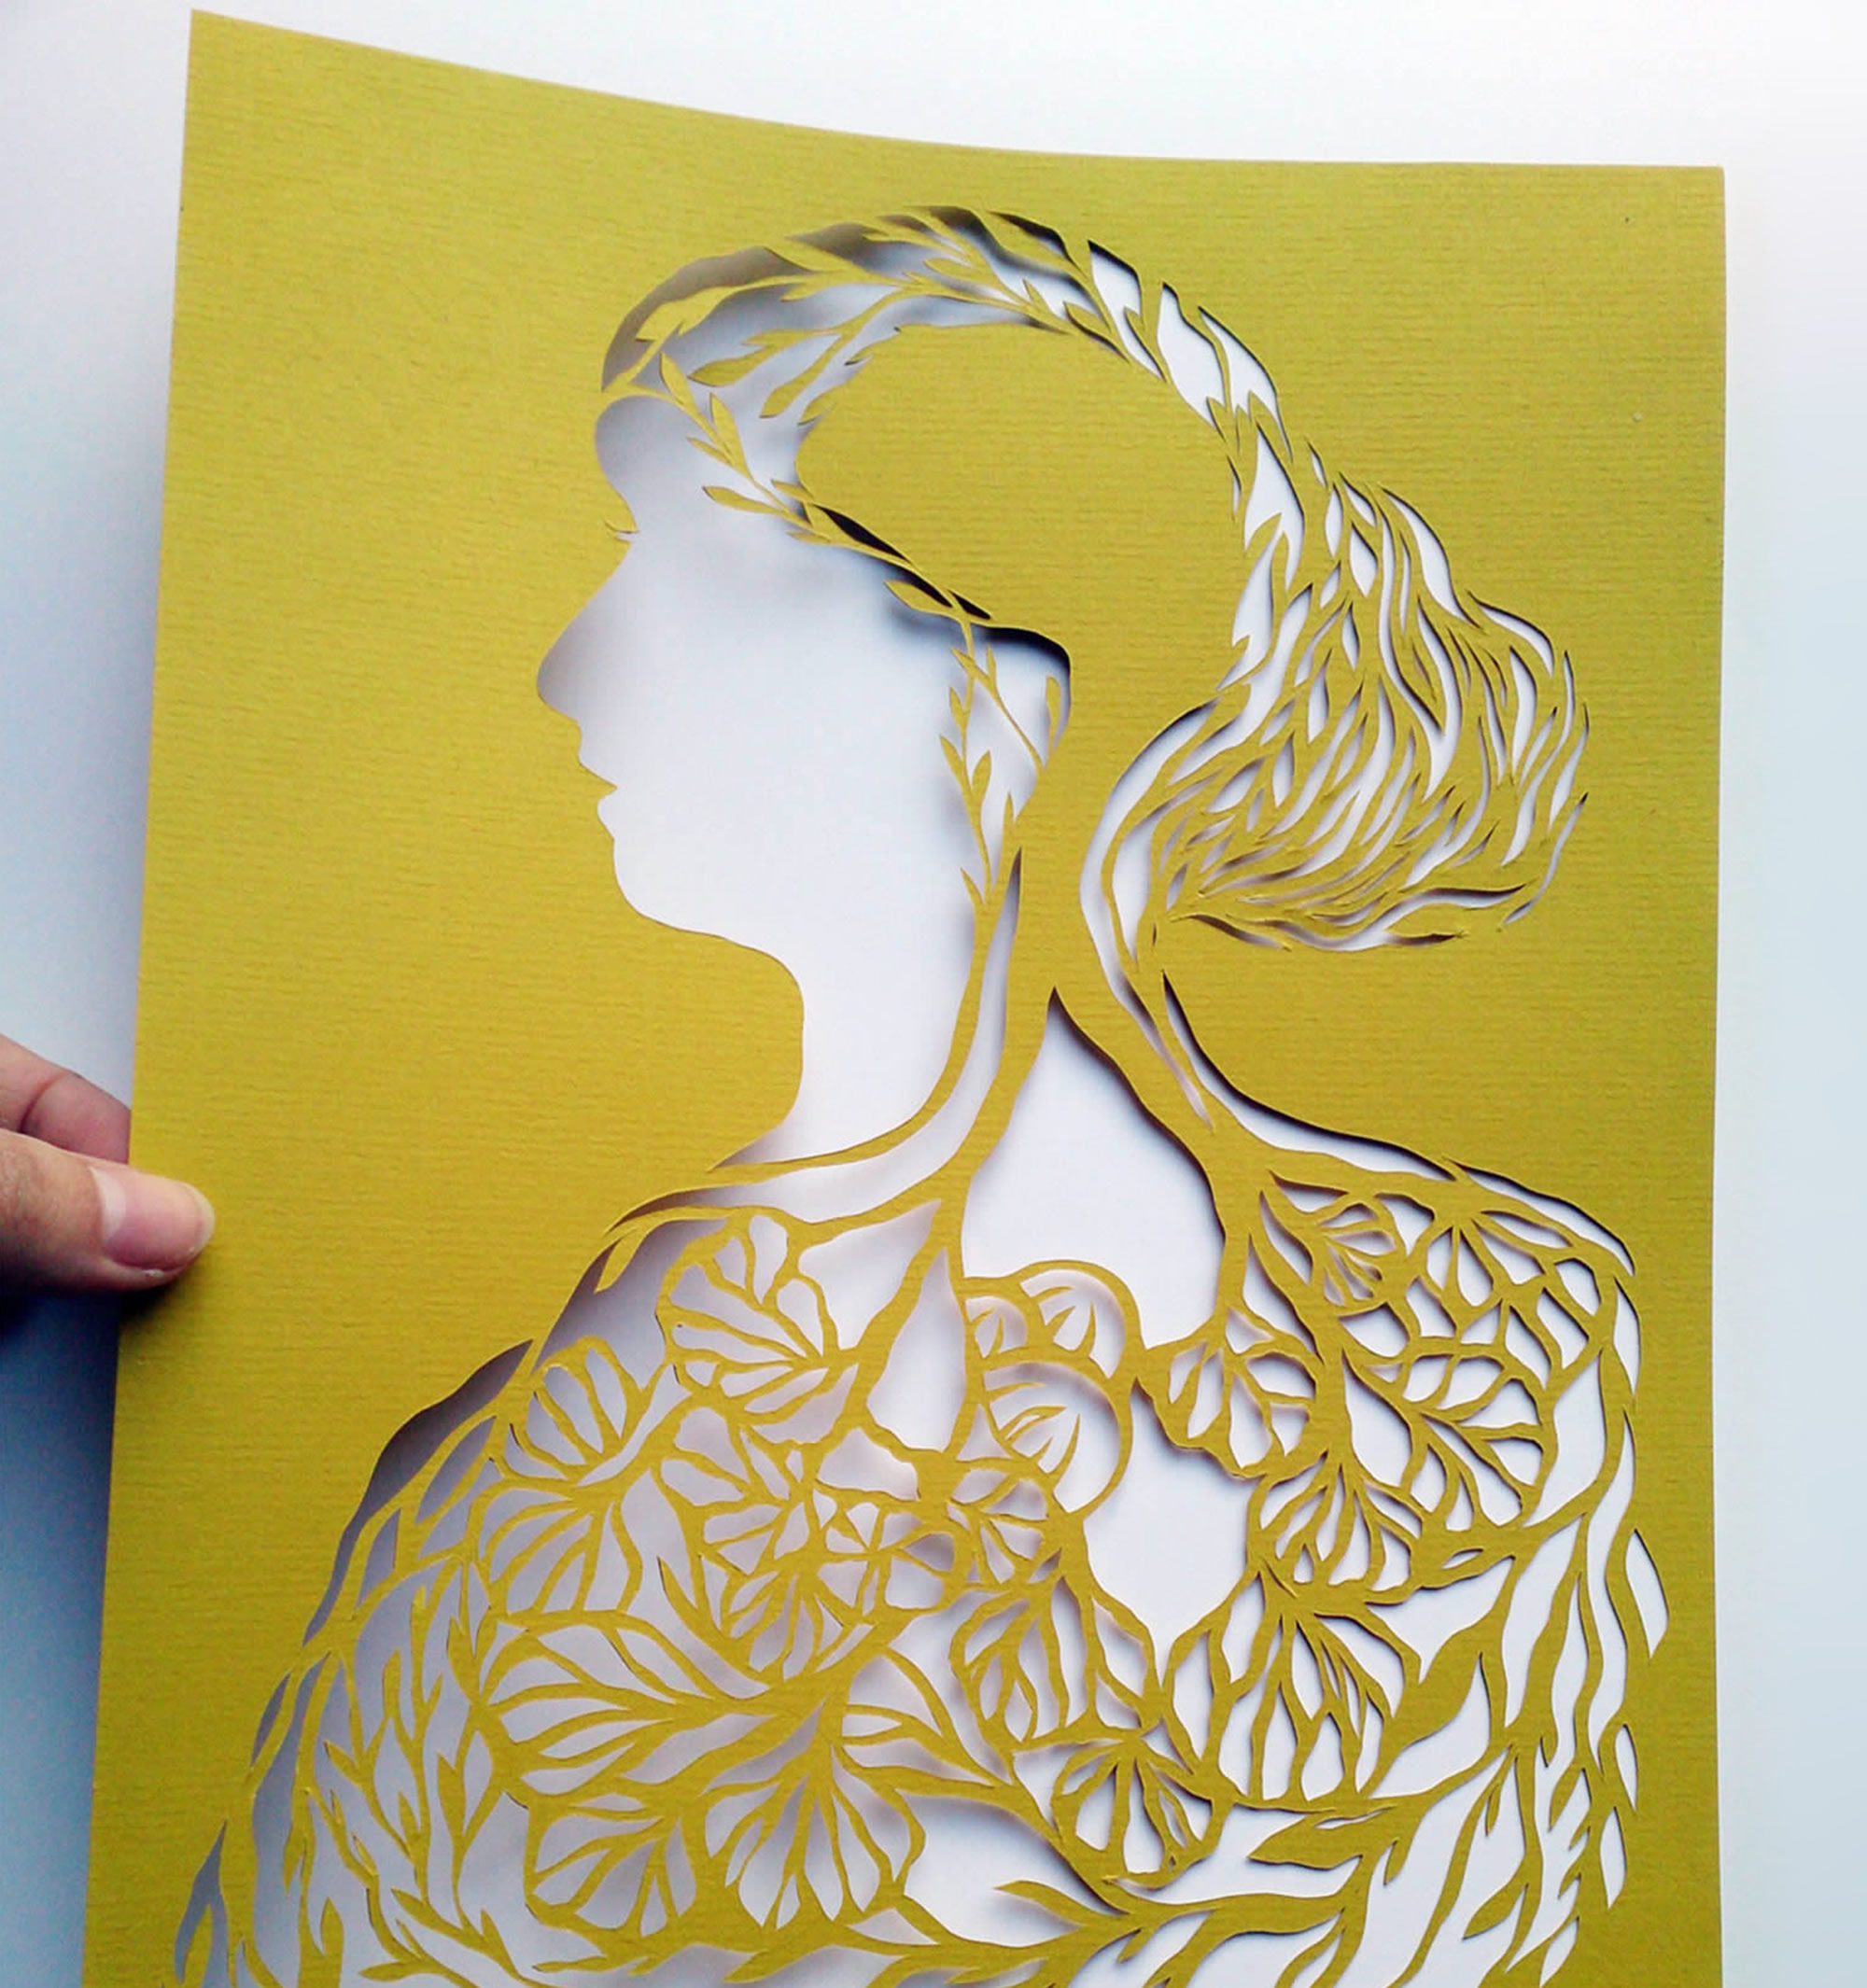 Intricate Cut Paper Portraits Tell Curious Stories